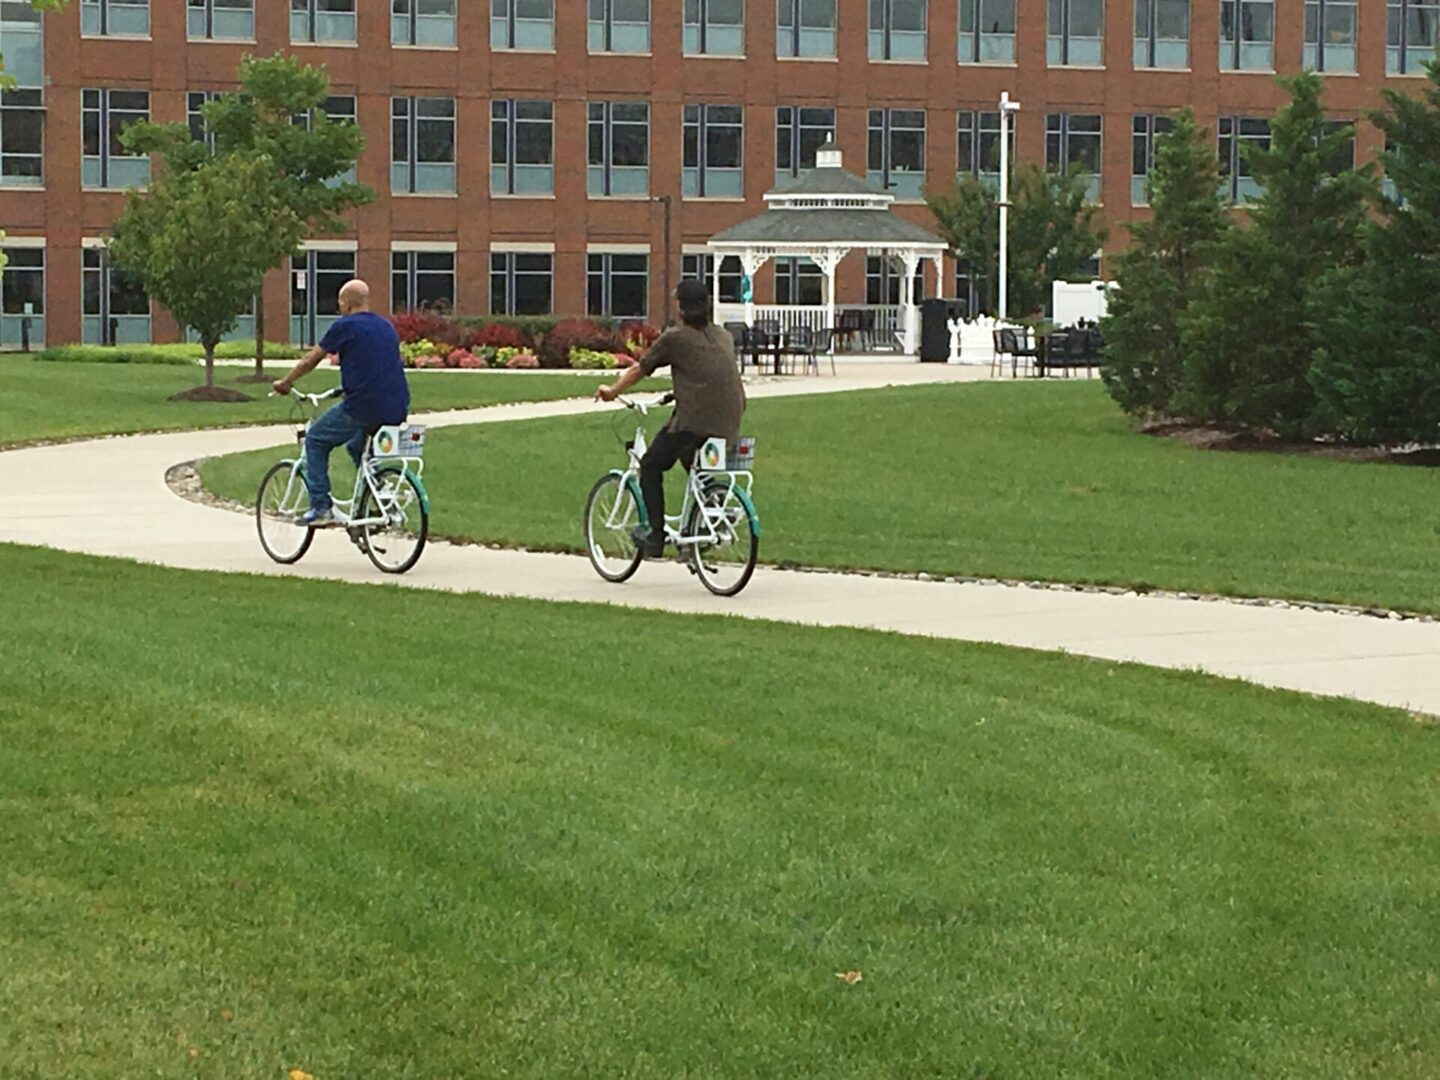 Two people riding a bike along a curved pathway